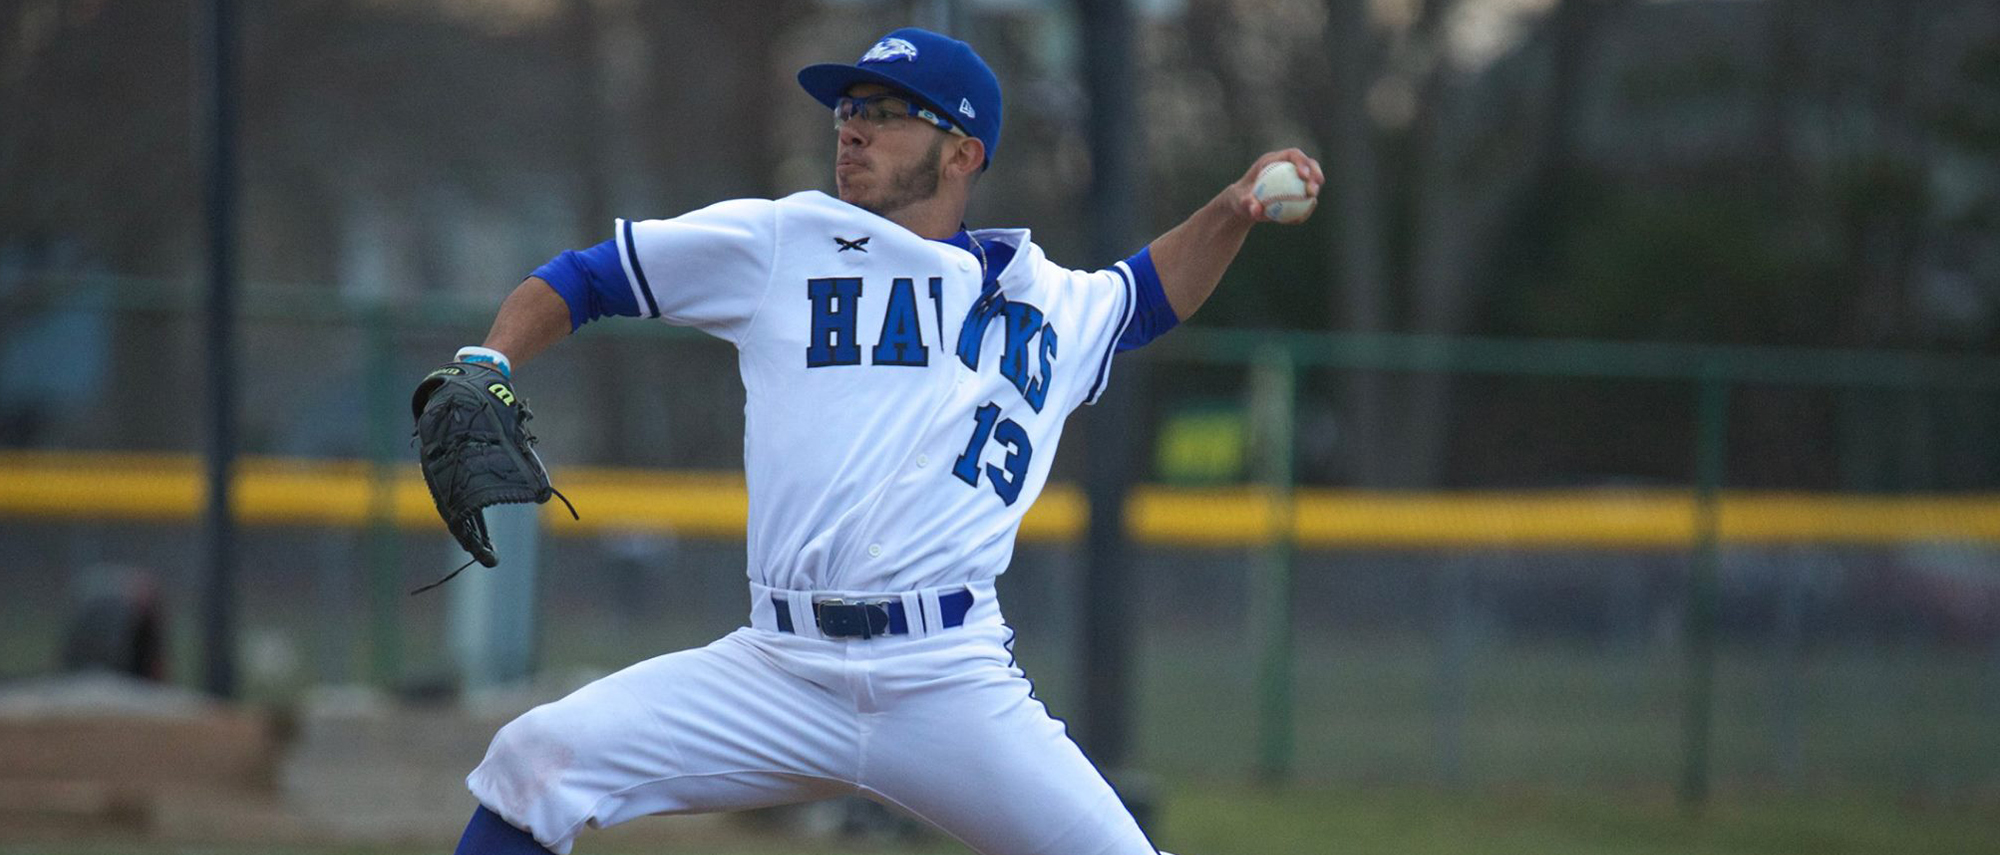 Dan Diaz pitched the Hawks past Newbury on Saturday evening